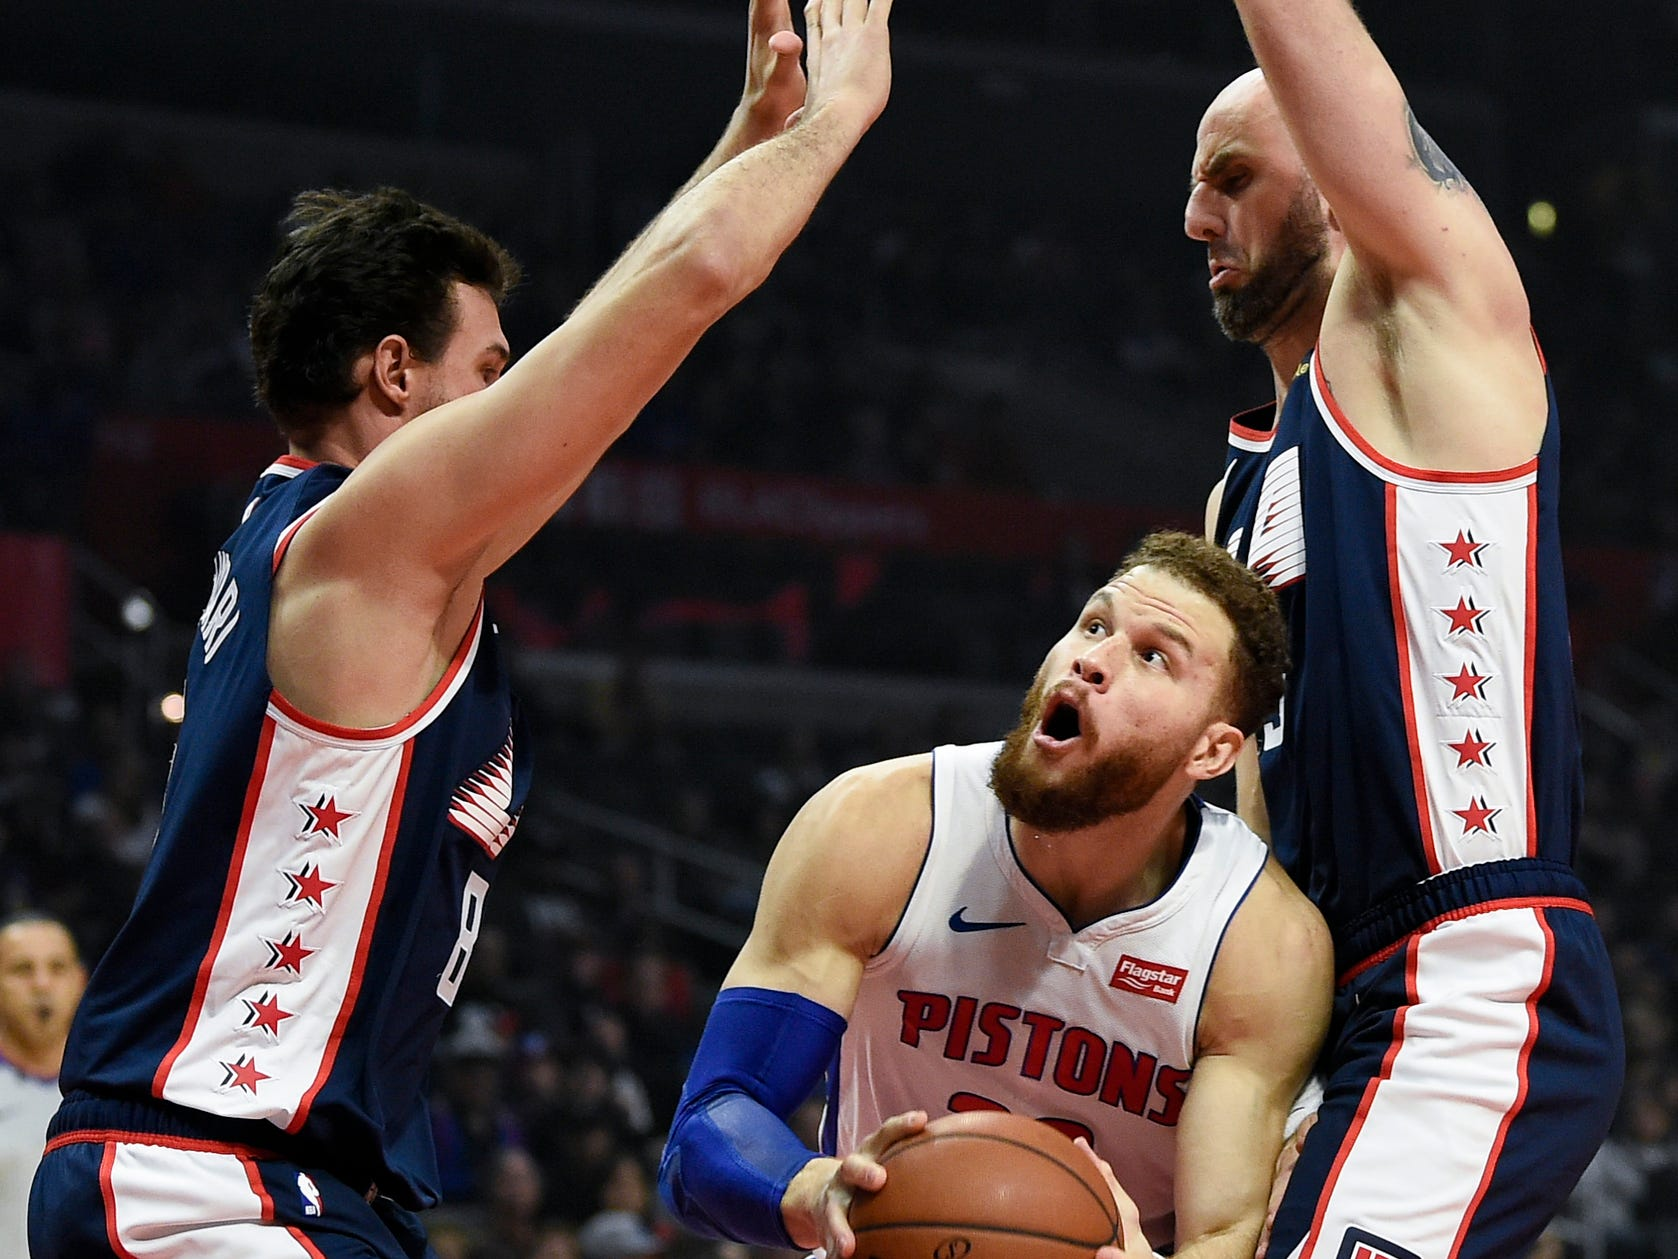 Pistons forward Blake Griffin drives to the basket between Clippers forward Danilo Gallinari, left, and center Marcin Gortat during the first quarter on Saturday, Jan. 12, 2019, in Los Angeles.